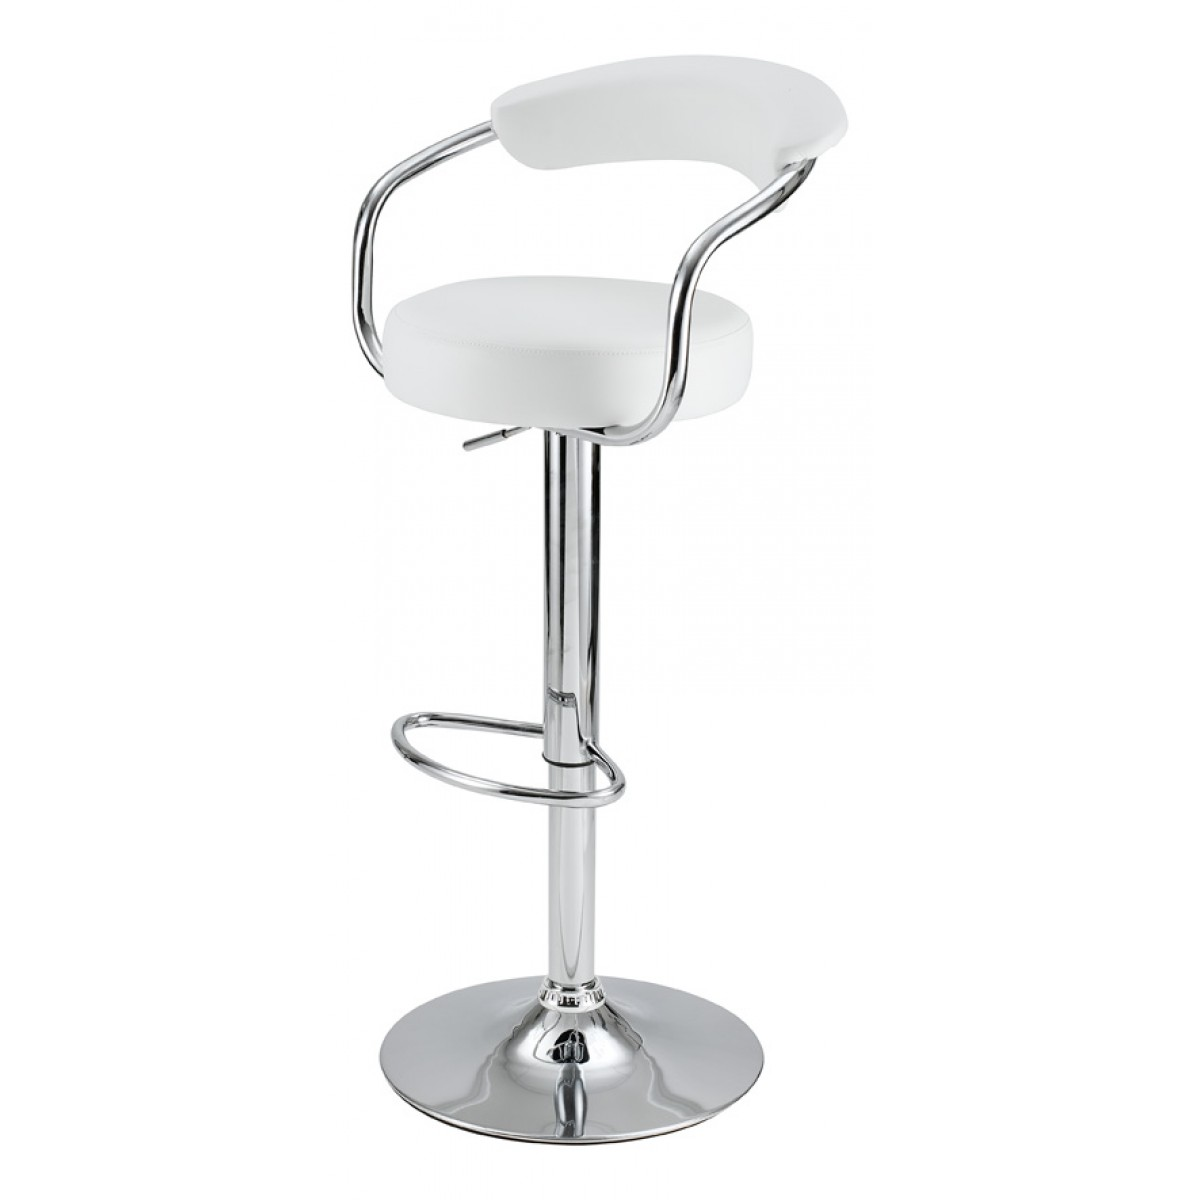 tabouret de bar avec accoudoirs blanc lot de 2. Black Bedroom Furniture Sets. Home Design Ideas